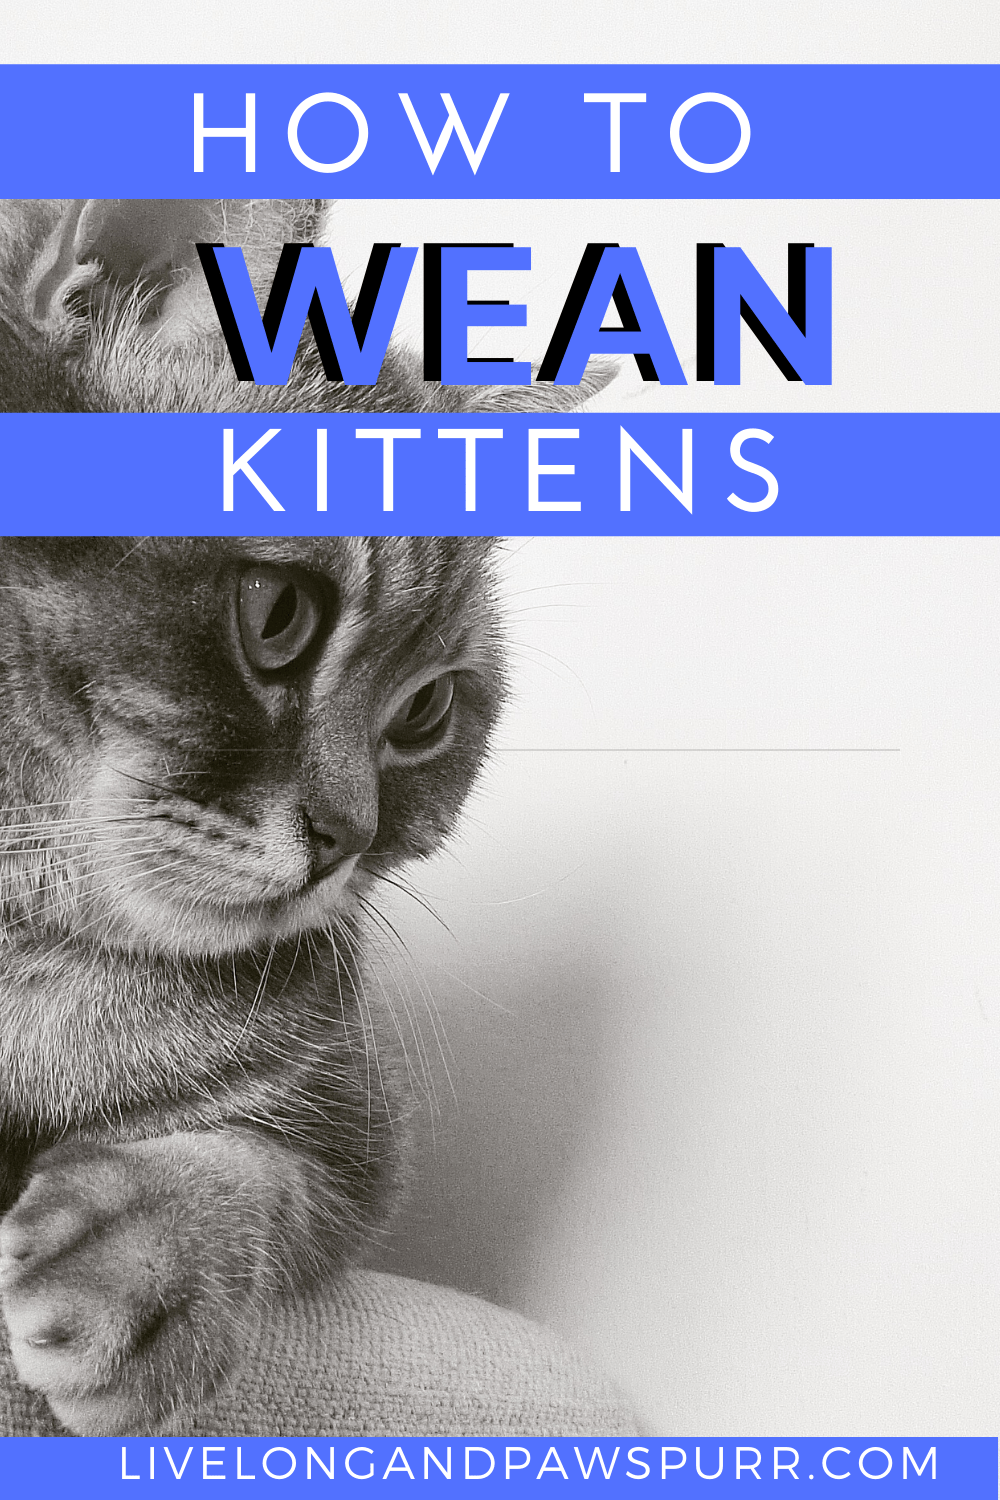 How To Wean Kittens Off Of A Bottle In 2020 Kitten Care Weaning